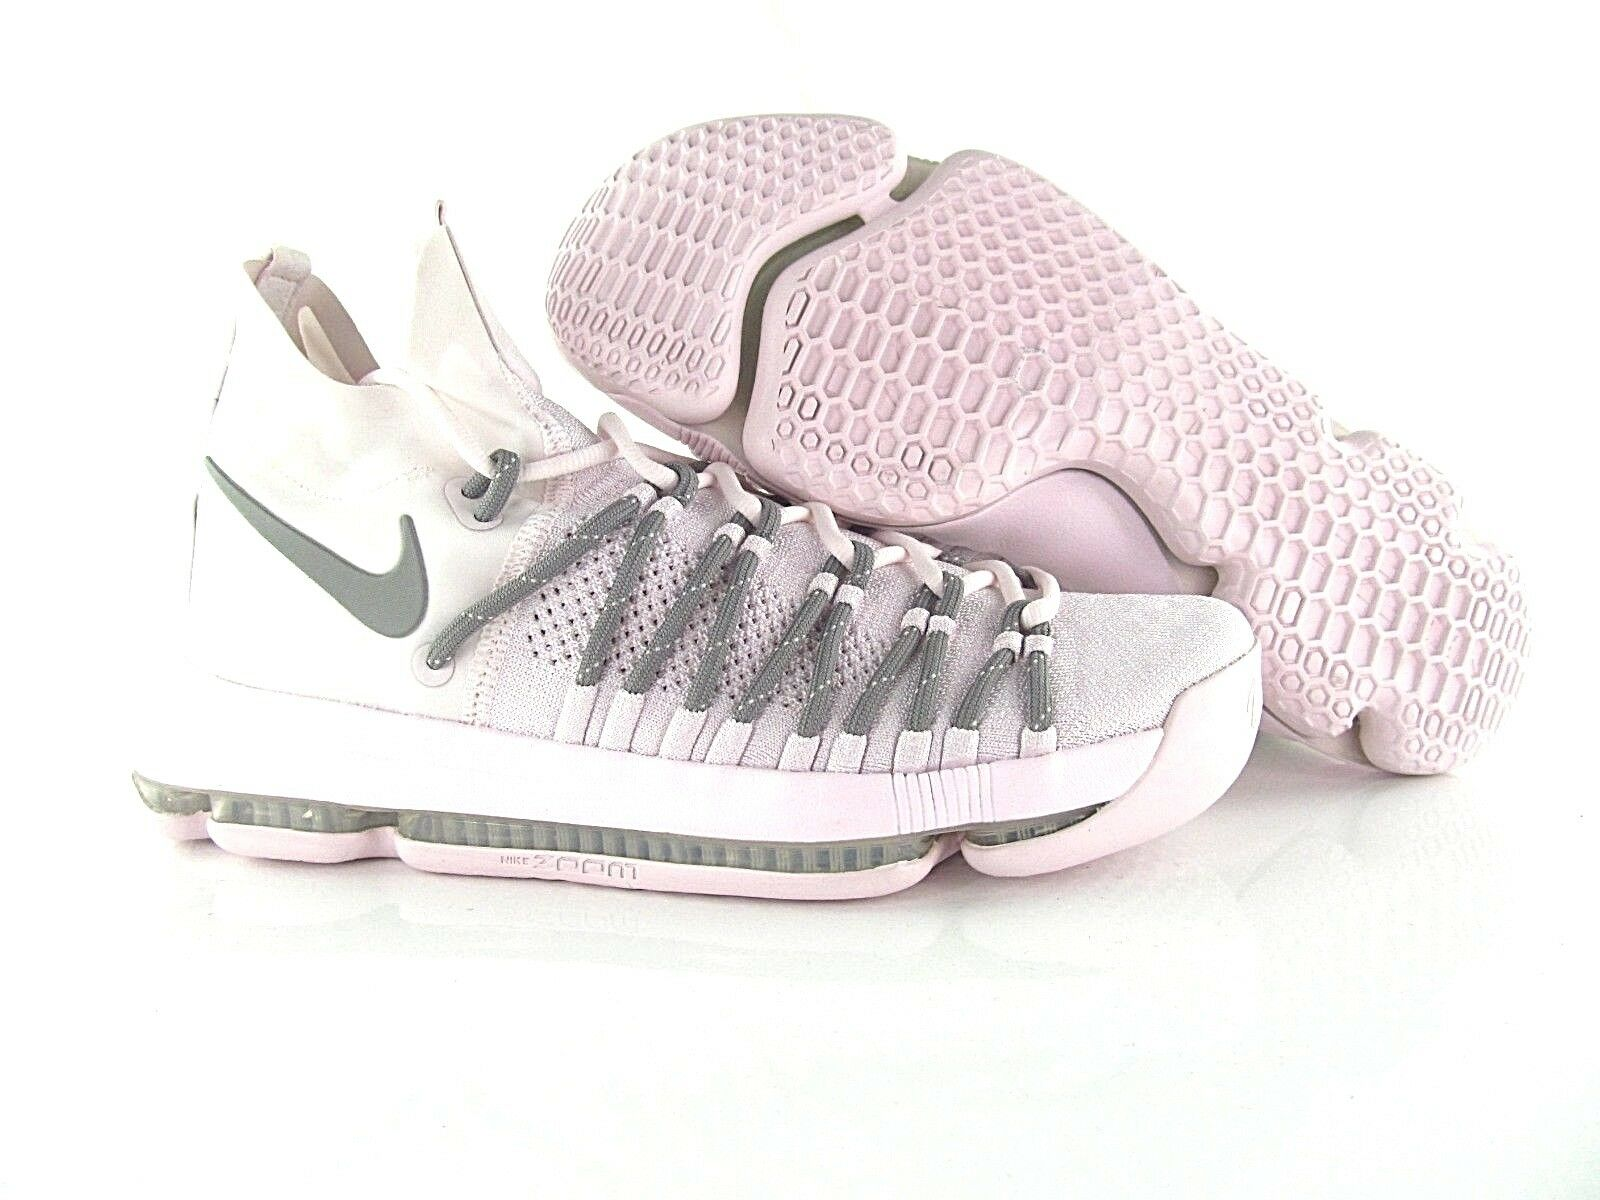 Nike Zoom KD9 Elite NL LMTD Pink Basketball Sneakers UK_8.5 US_9.5 EUR_43